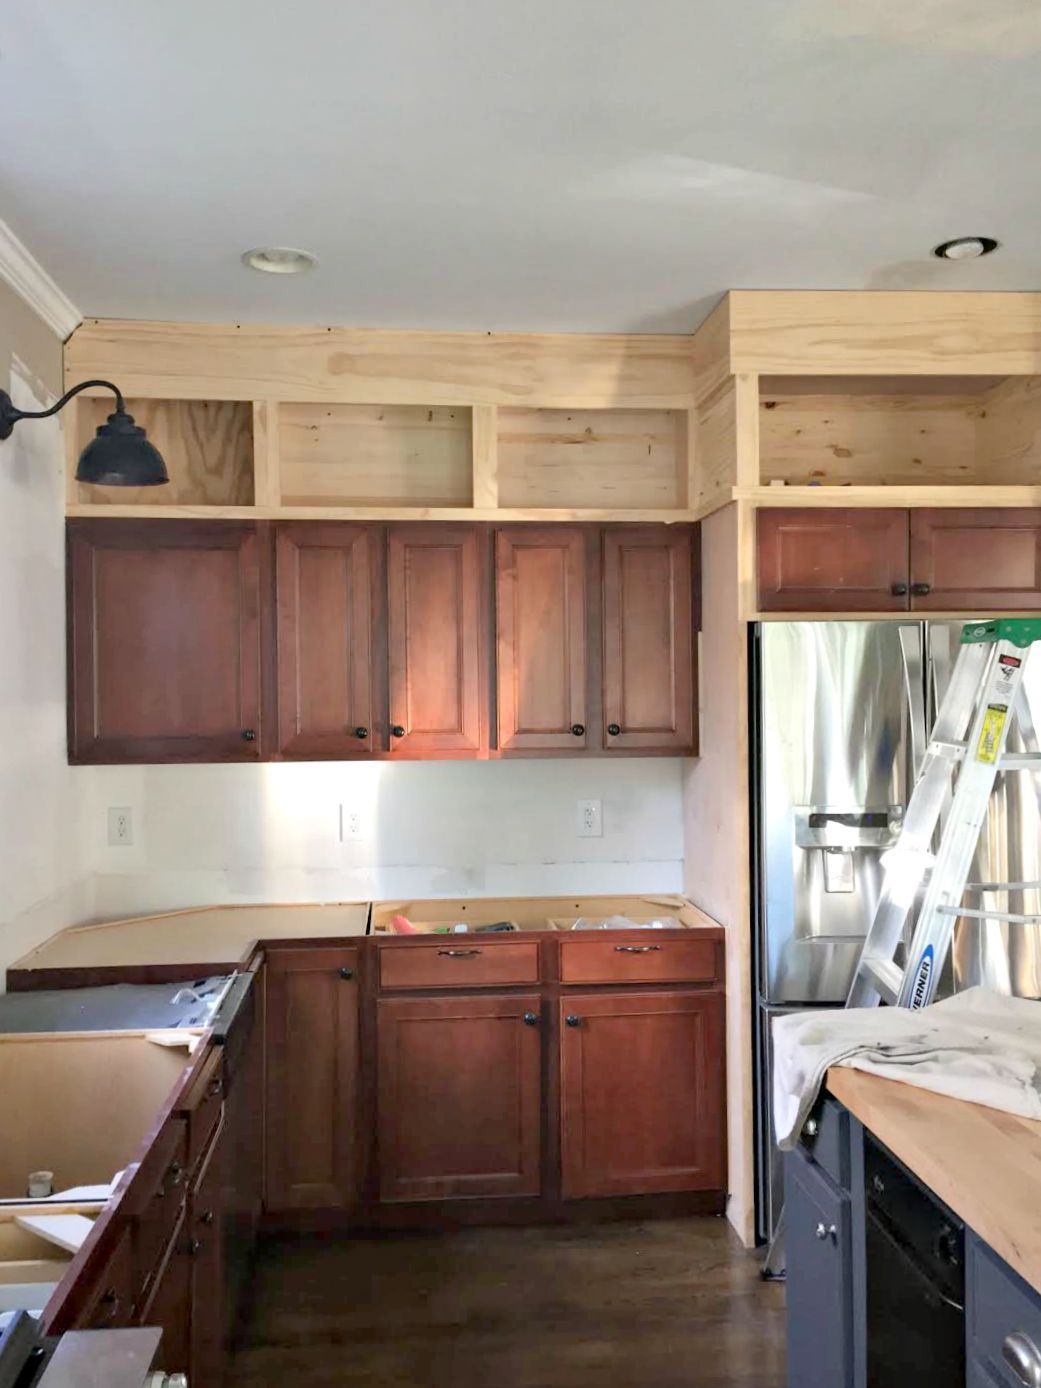 building cabinets up to the ceiling in 2019   house updates/repairs